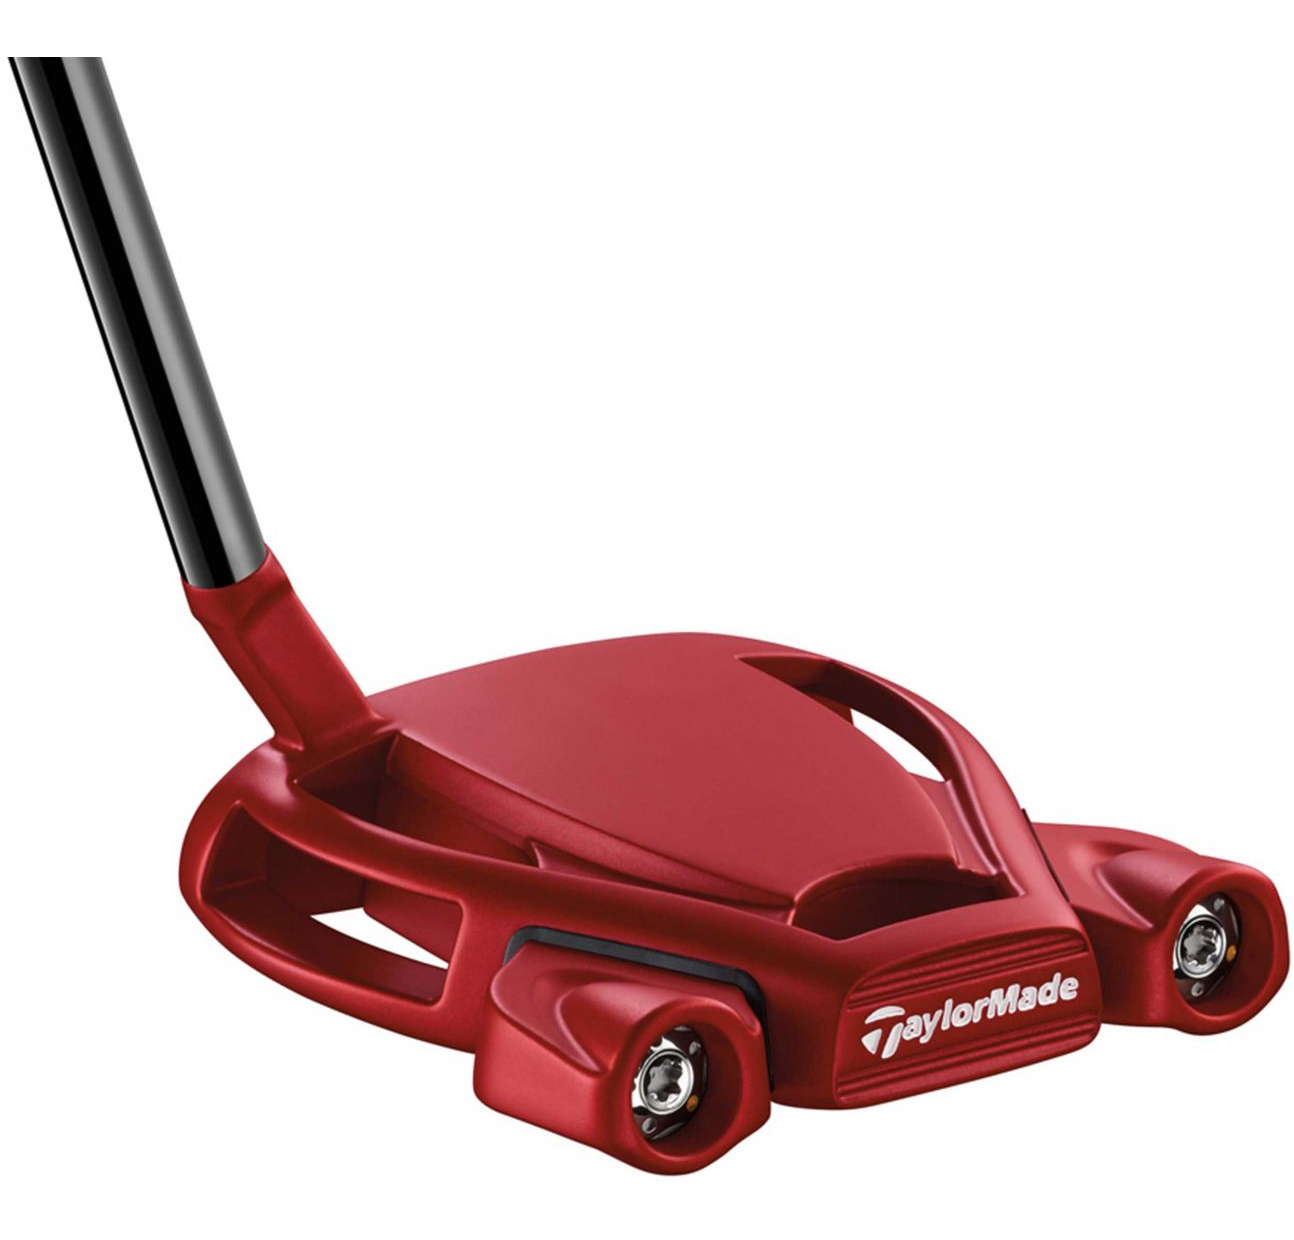 TaylorMade Spider Tour Red and Black Putter $229.98